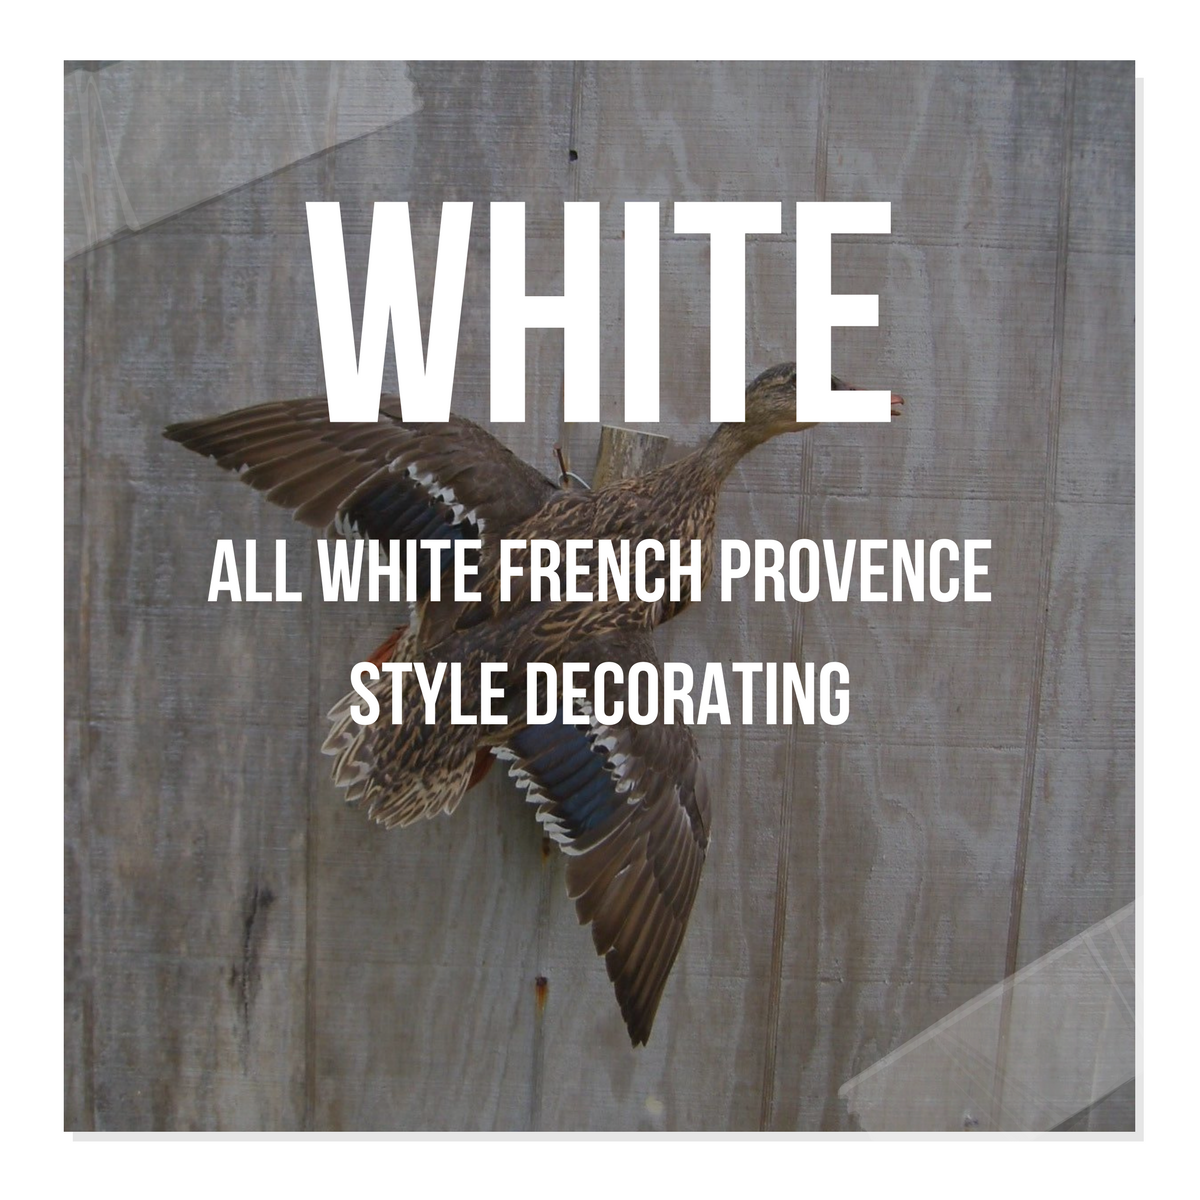 All White French Provence Style Decorating